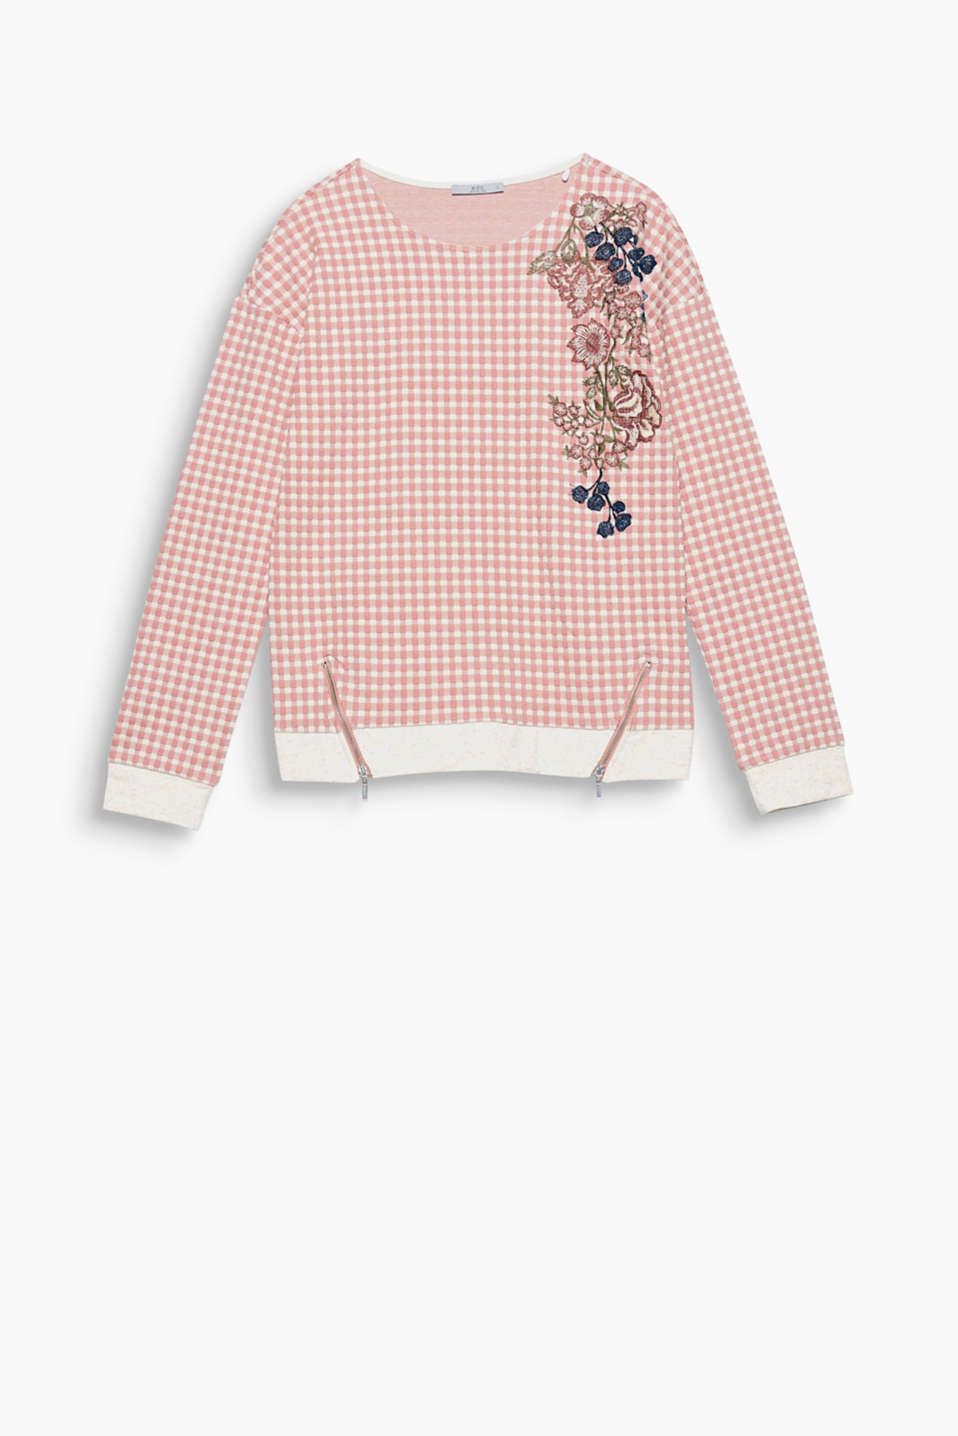 Sweatshirt with a check pattern with floral embroidery on the shoulders and zip details